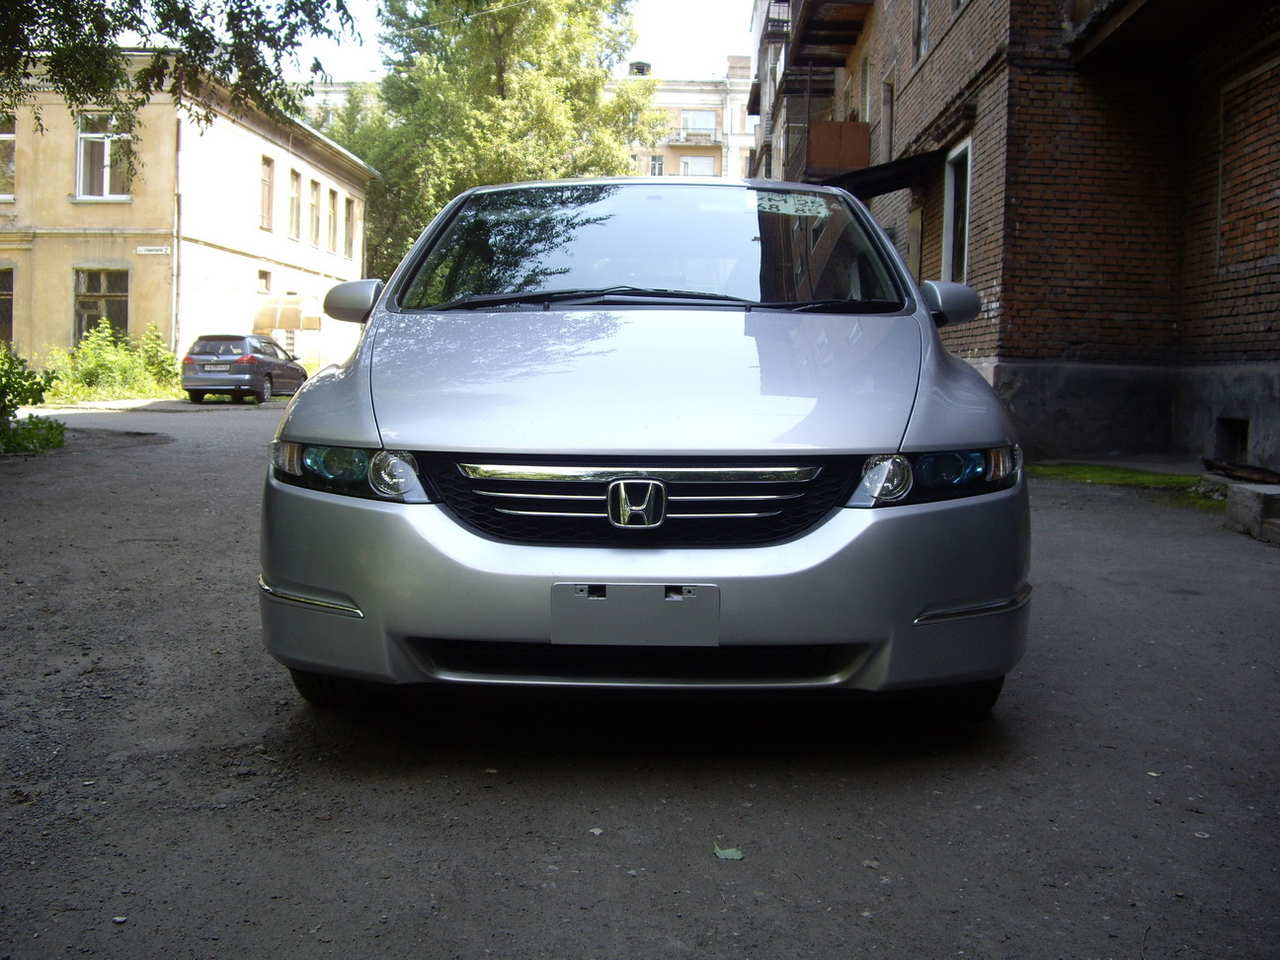 2003 honda odyssey photos 2 4 gasoline automatic for sale. Black Bedroom Furniture Sets. Home Design Ideas